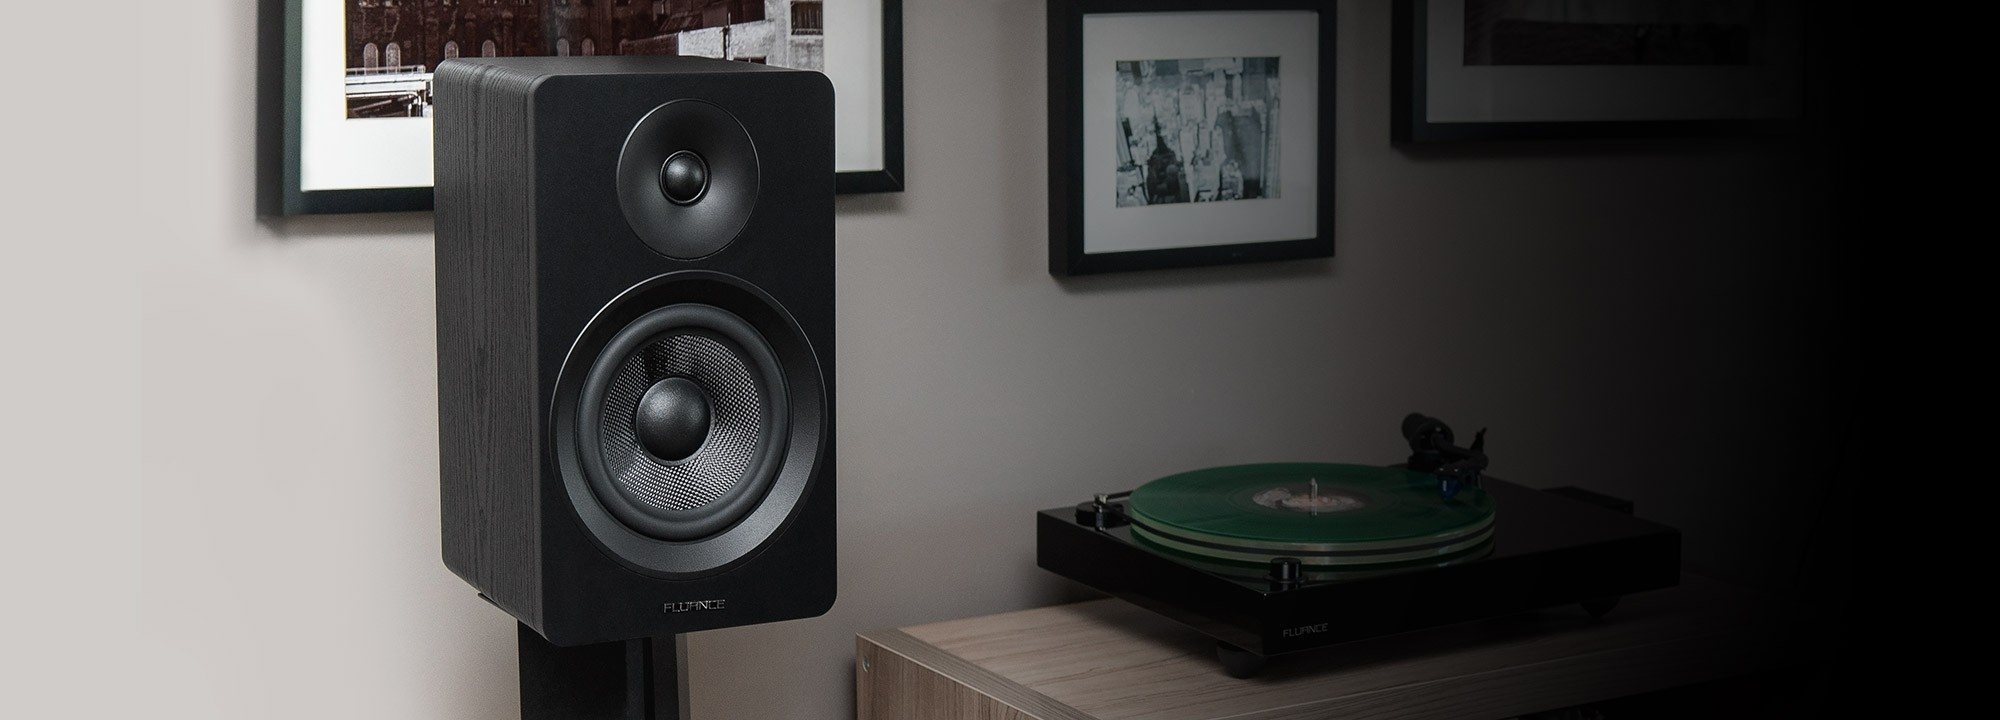 "Ai61 Powered 6.5"" Stereo Bookshelf Speakers"